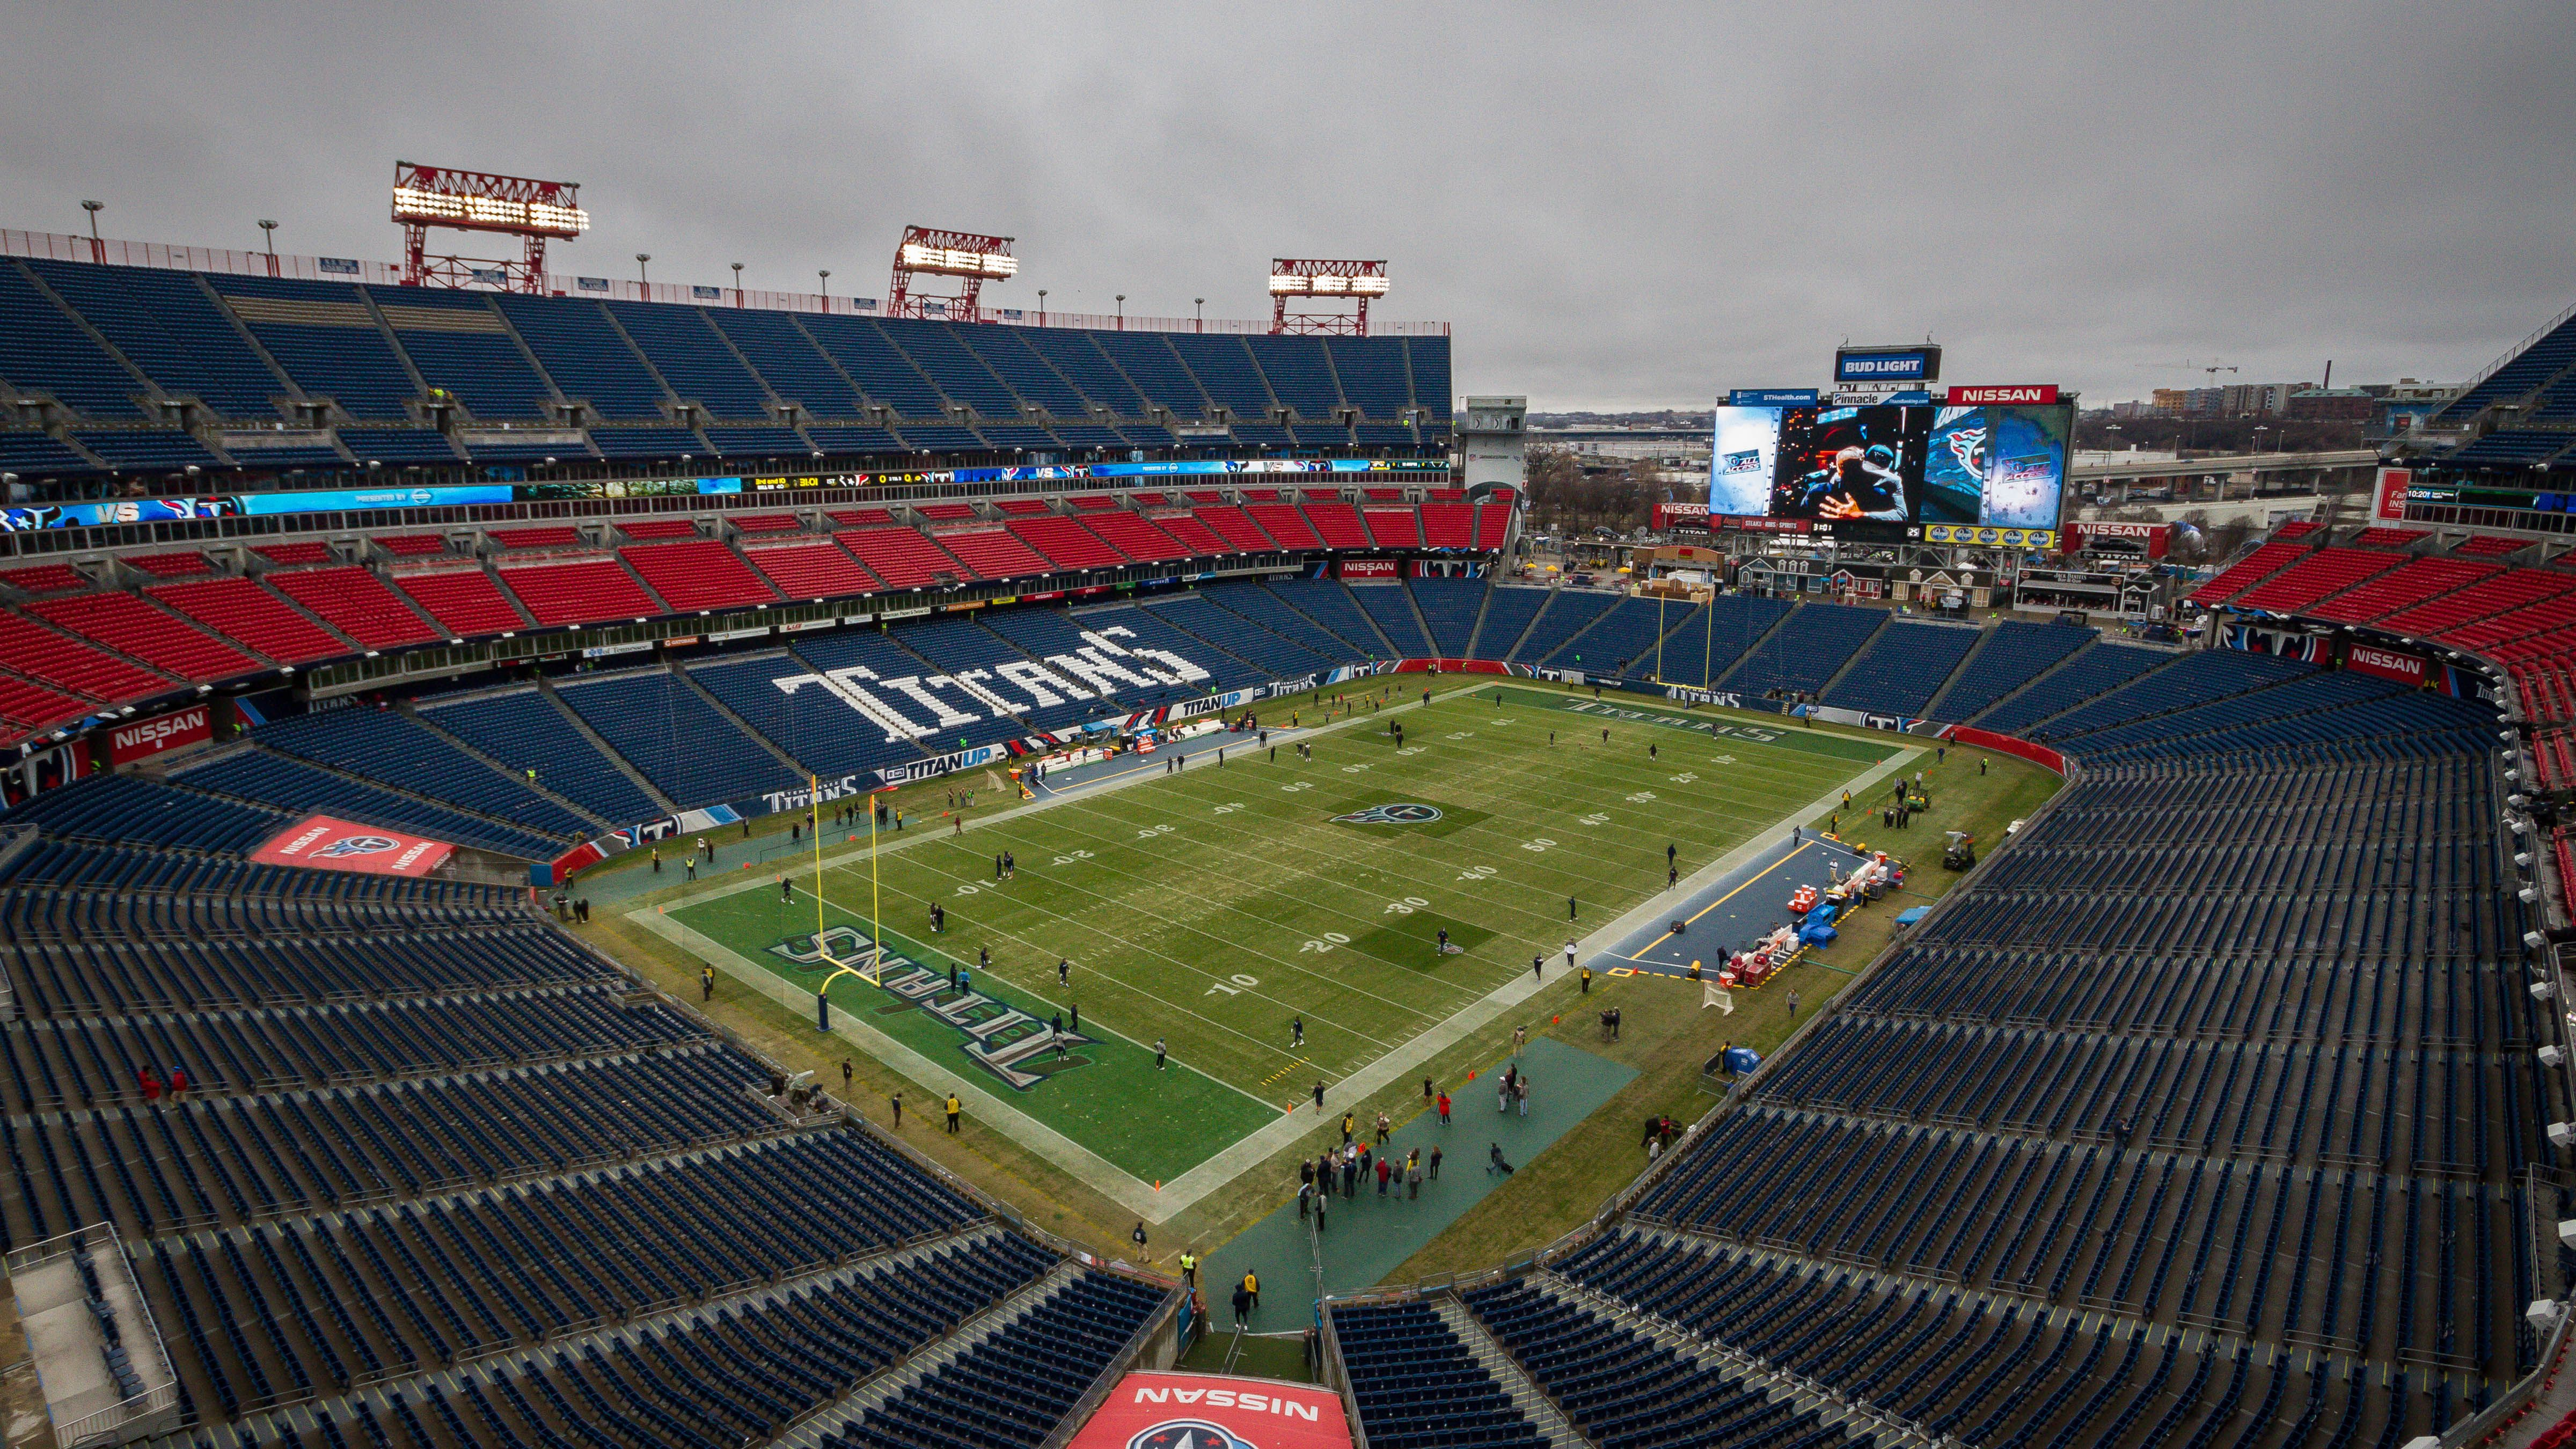 At Tennessee Titans